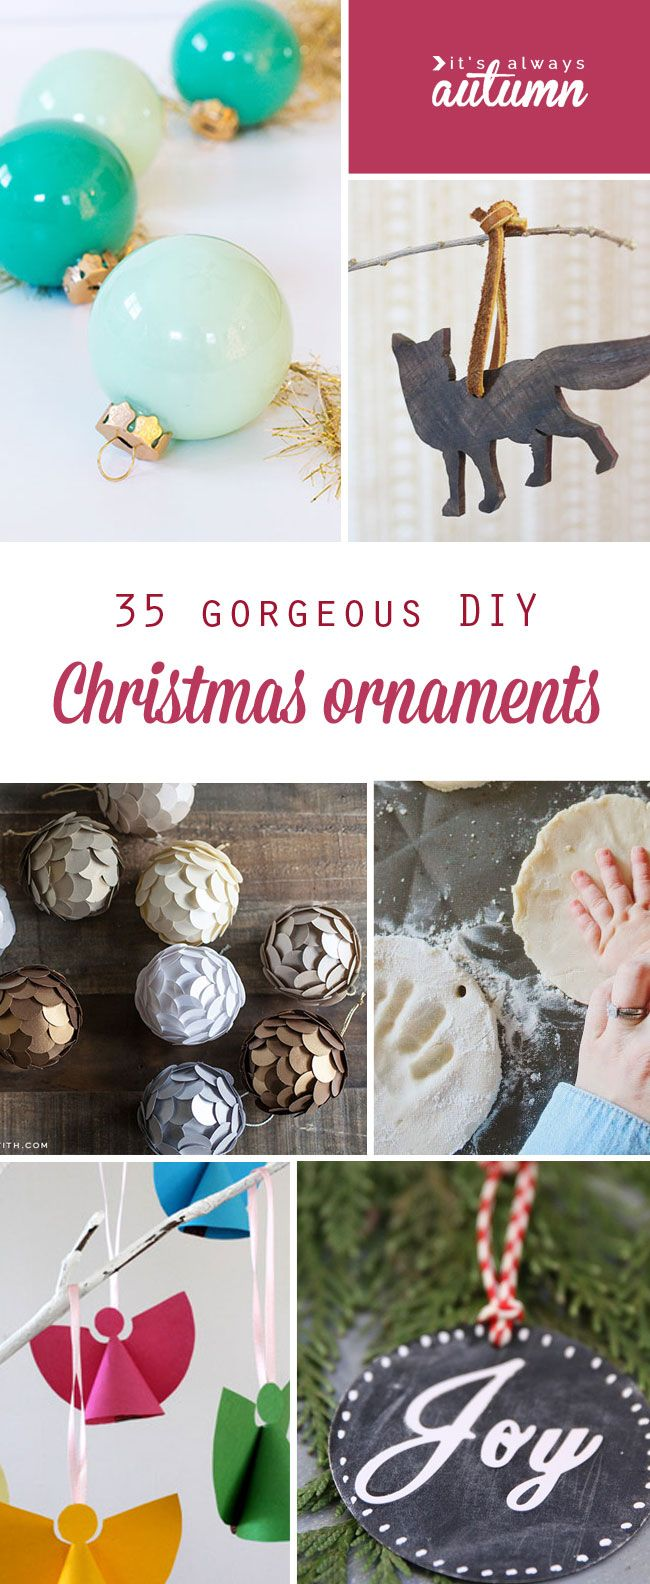 Margarita ornament - 35 Beautiful Diy Handmade Christmas Ornaments